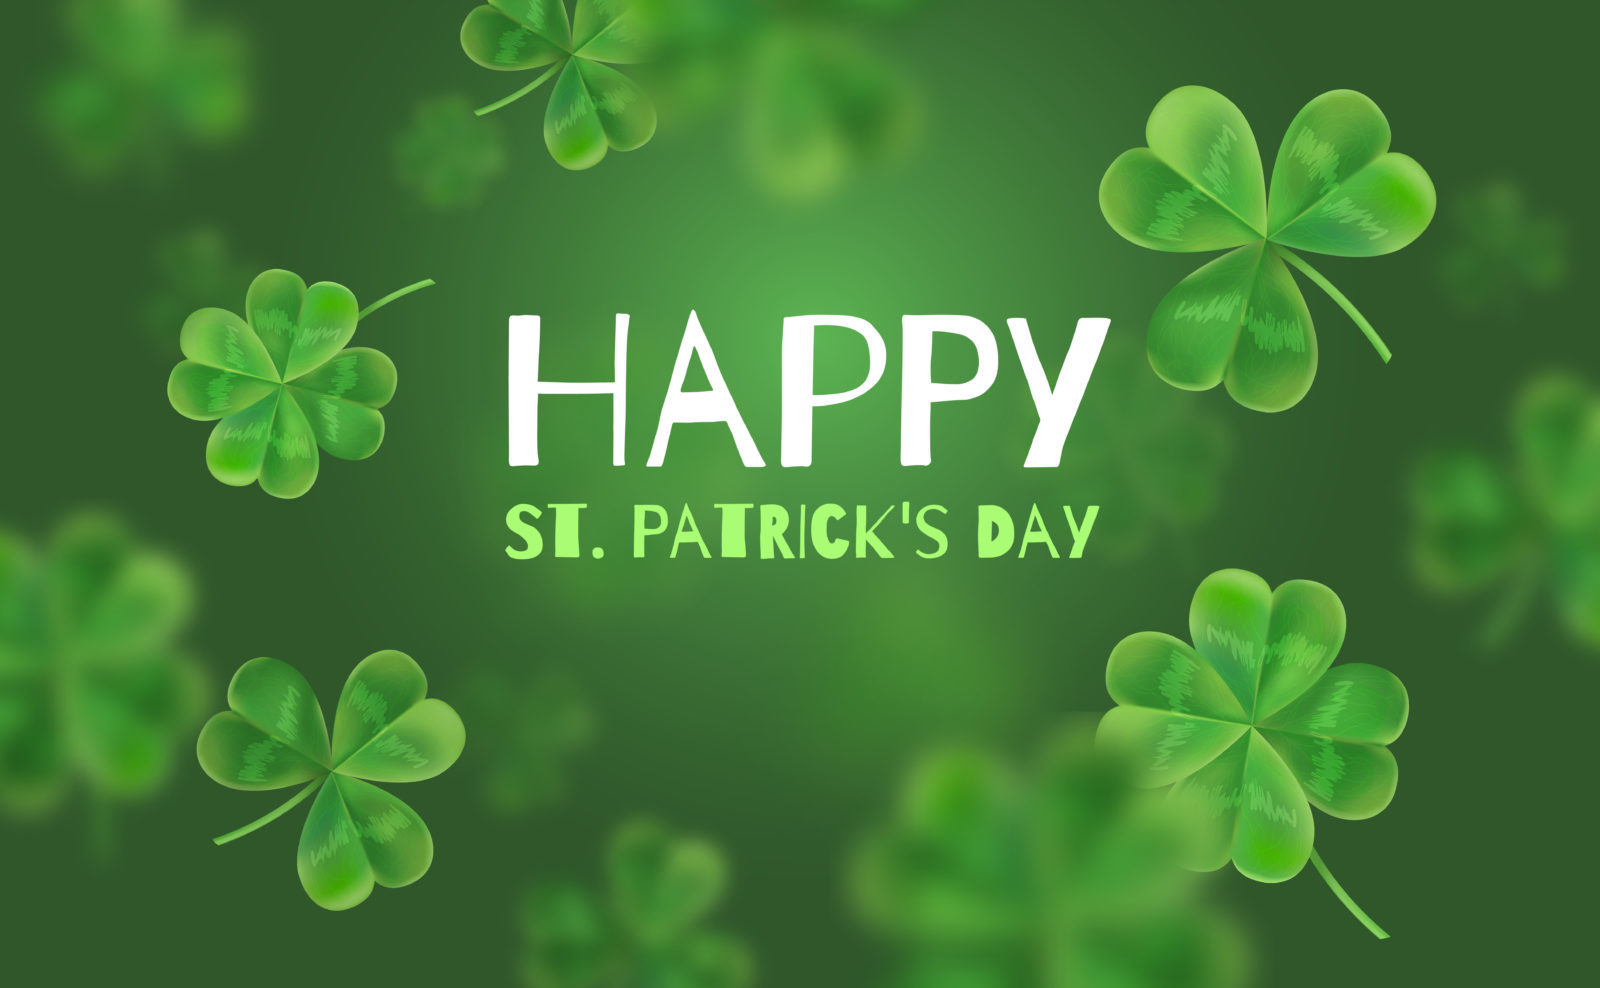 Have a drink for Paddy's day even you're teetotal just to annoy those St. George's Day wankers